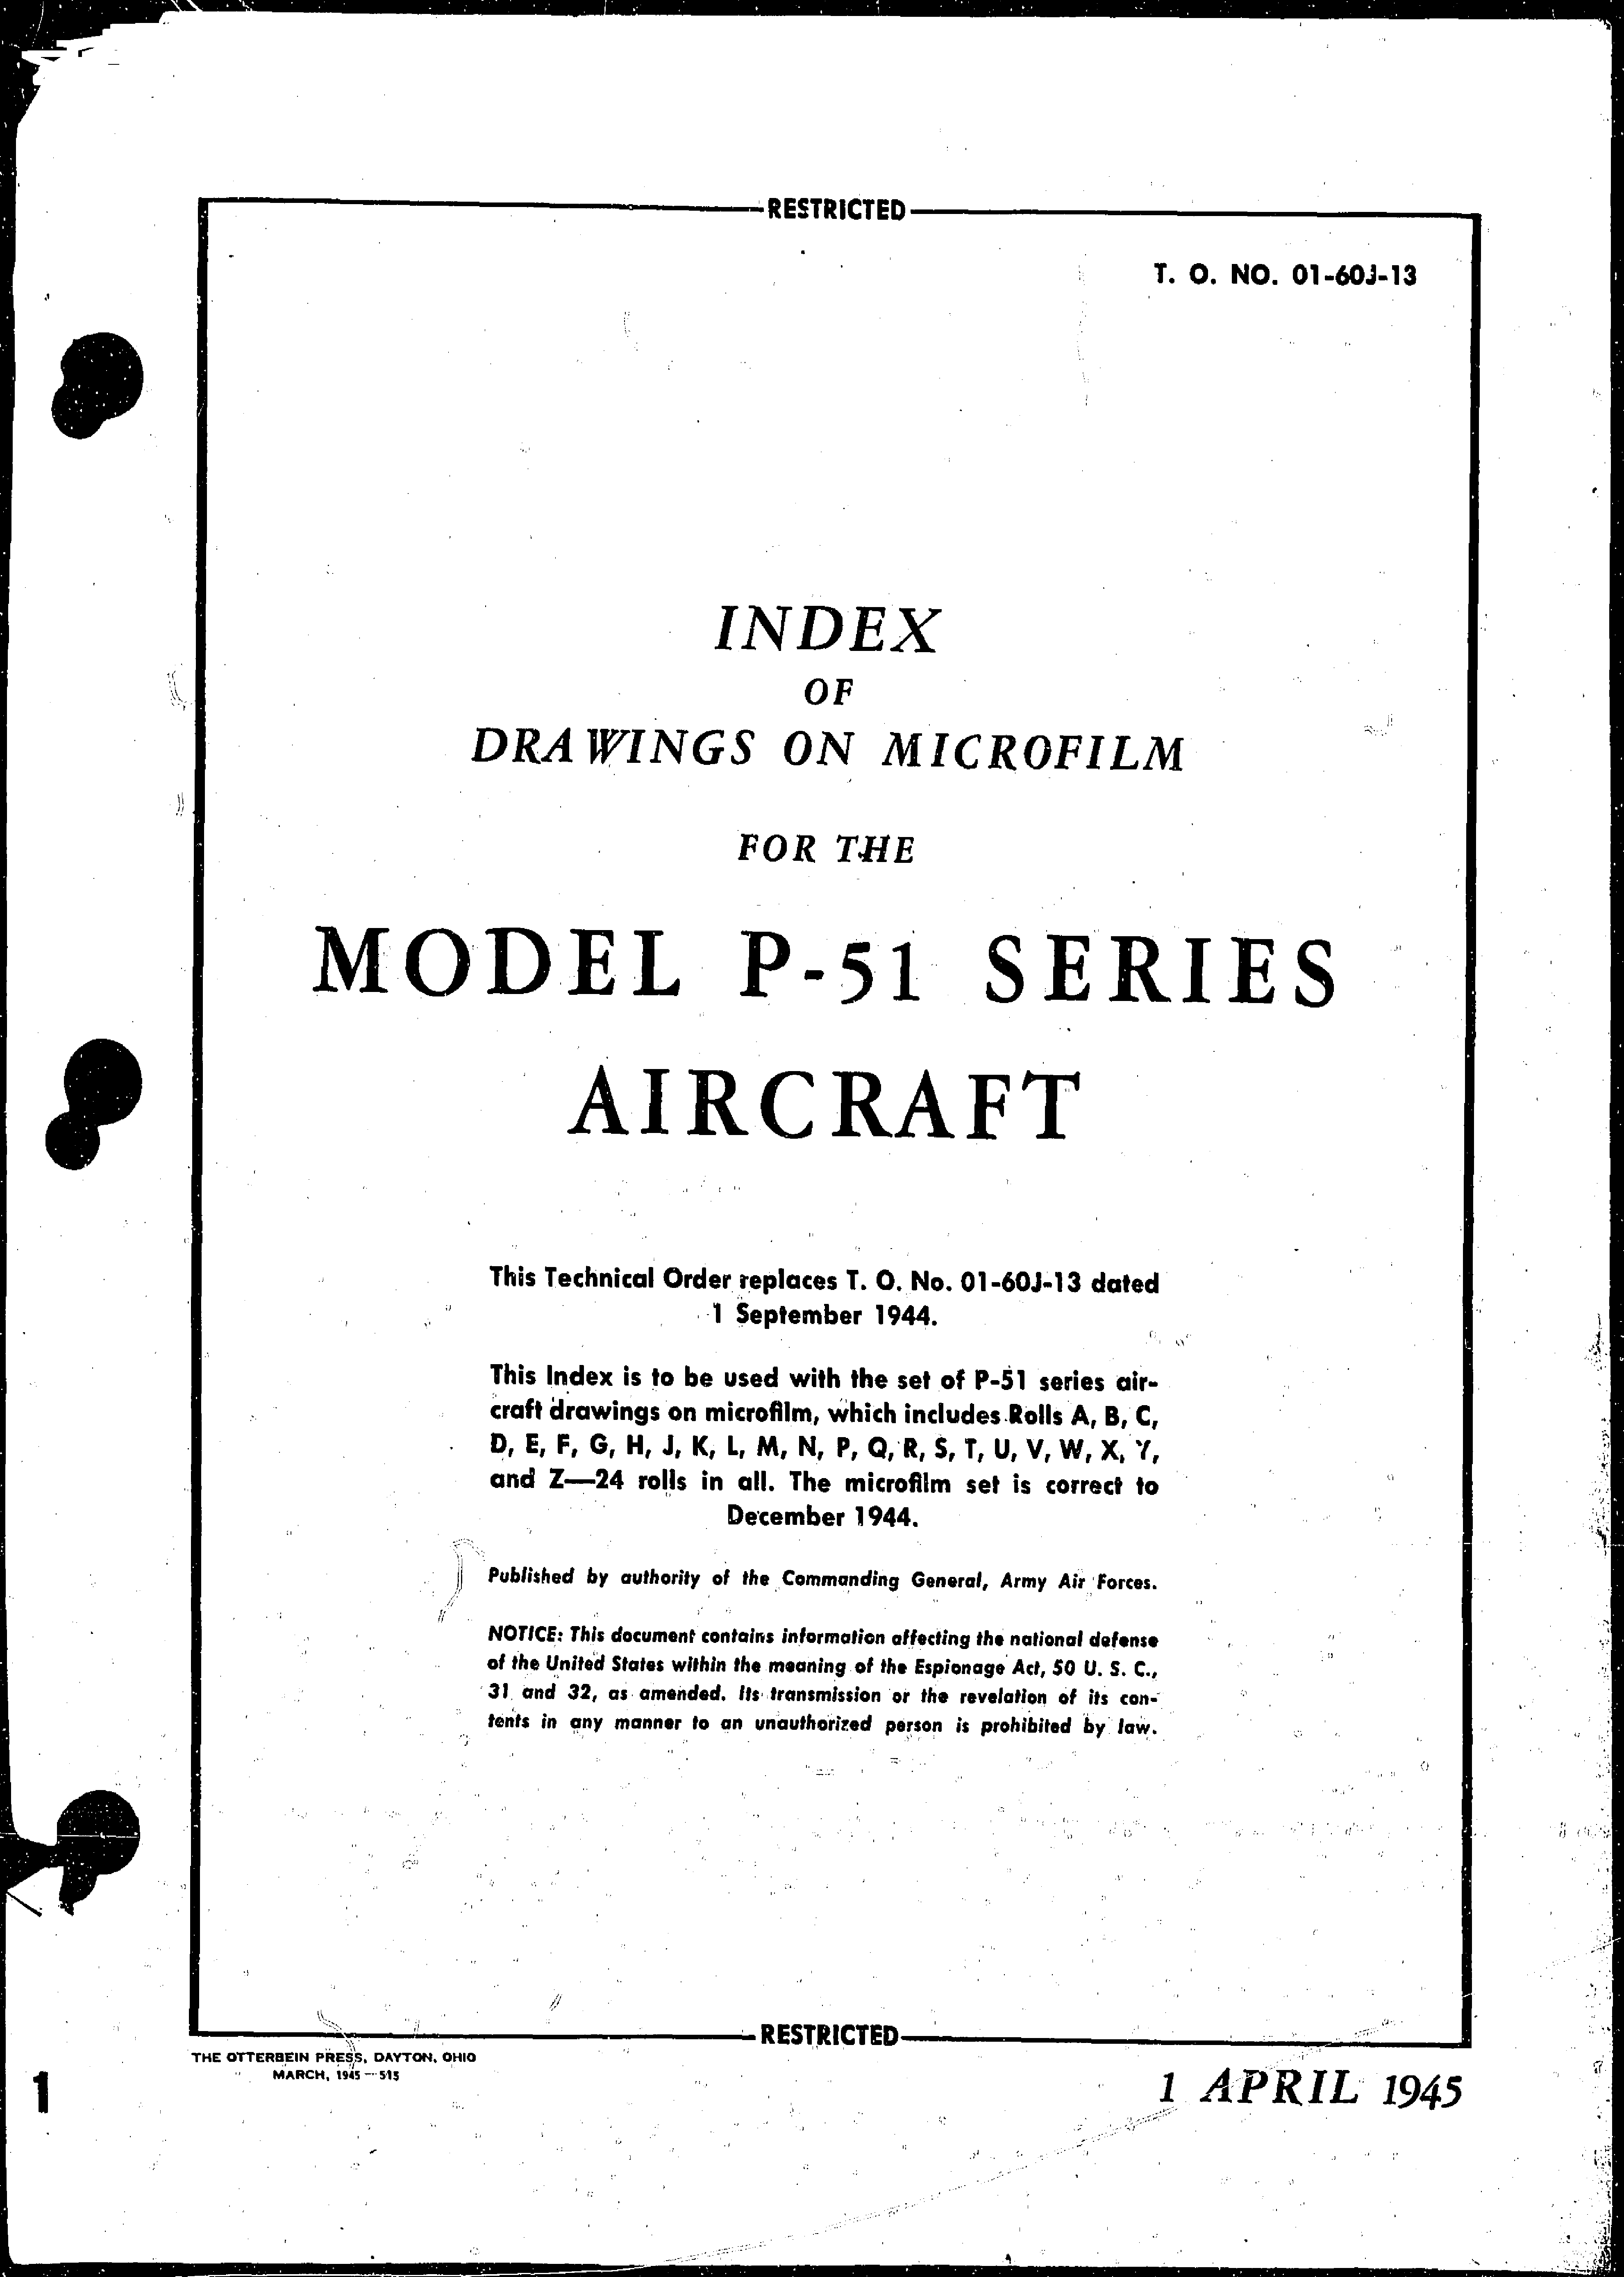 Sample page 1 from AirCorps Library document: Index of Drawings on Microfilm for Model P-51 Series Aircraft